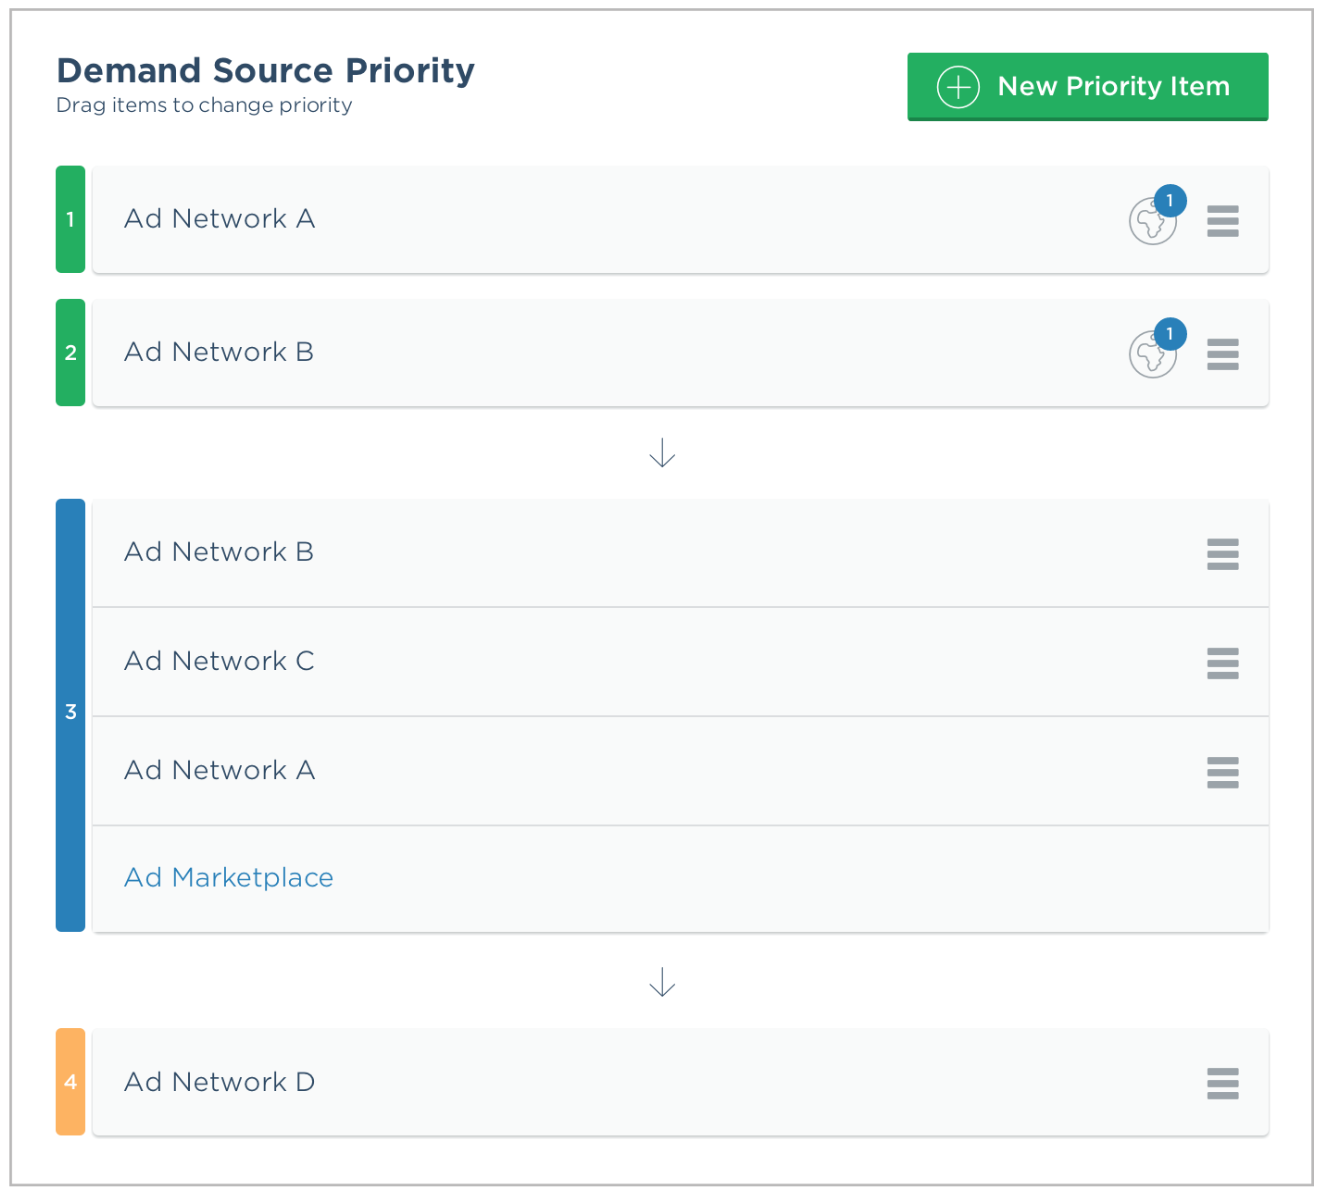 Demand Source Priority